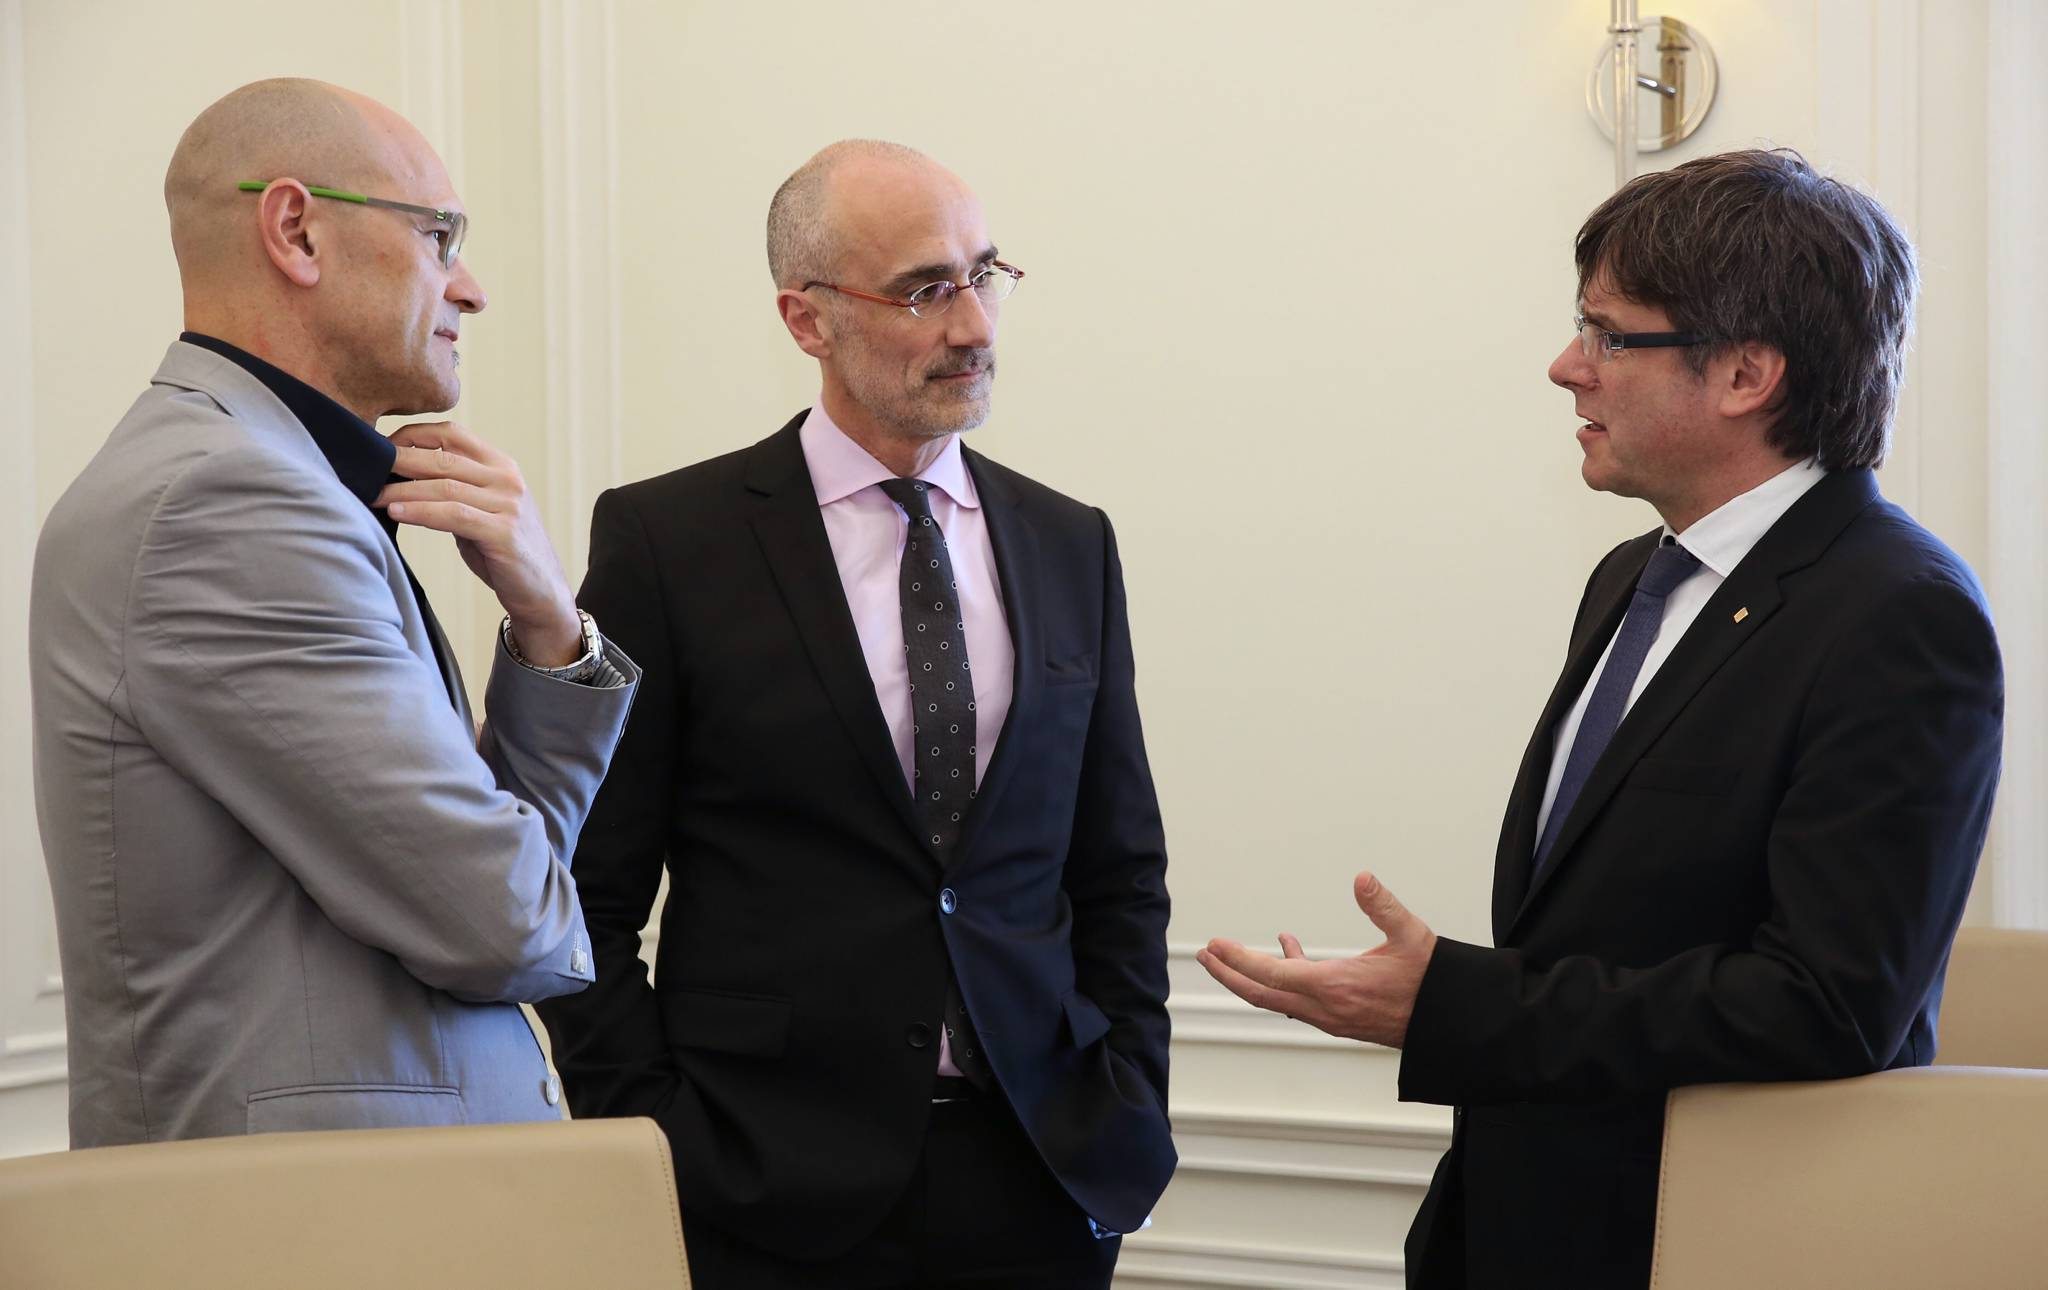 Meeting with Arthur Brooks, president of the American Enterprise Institute